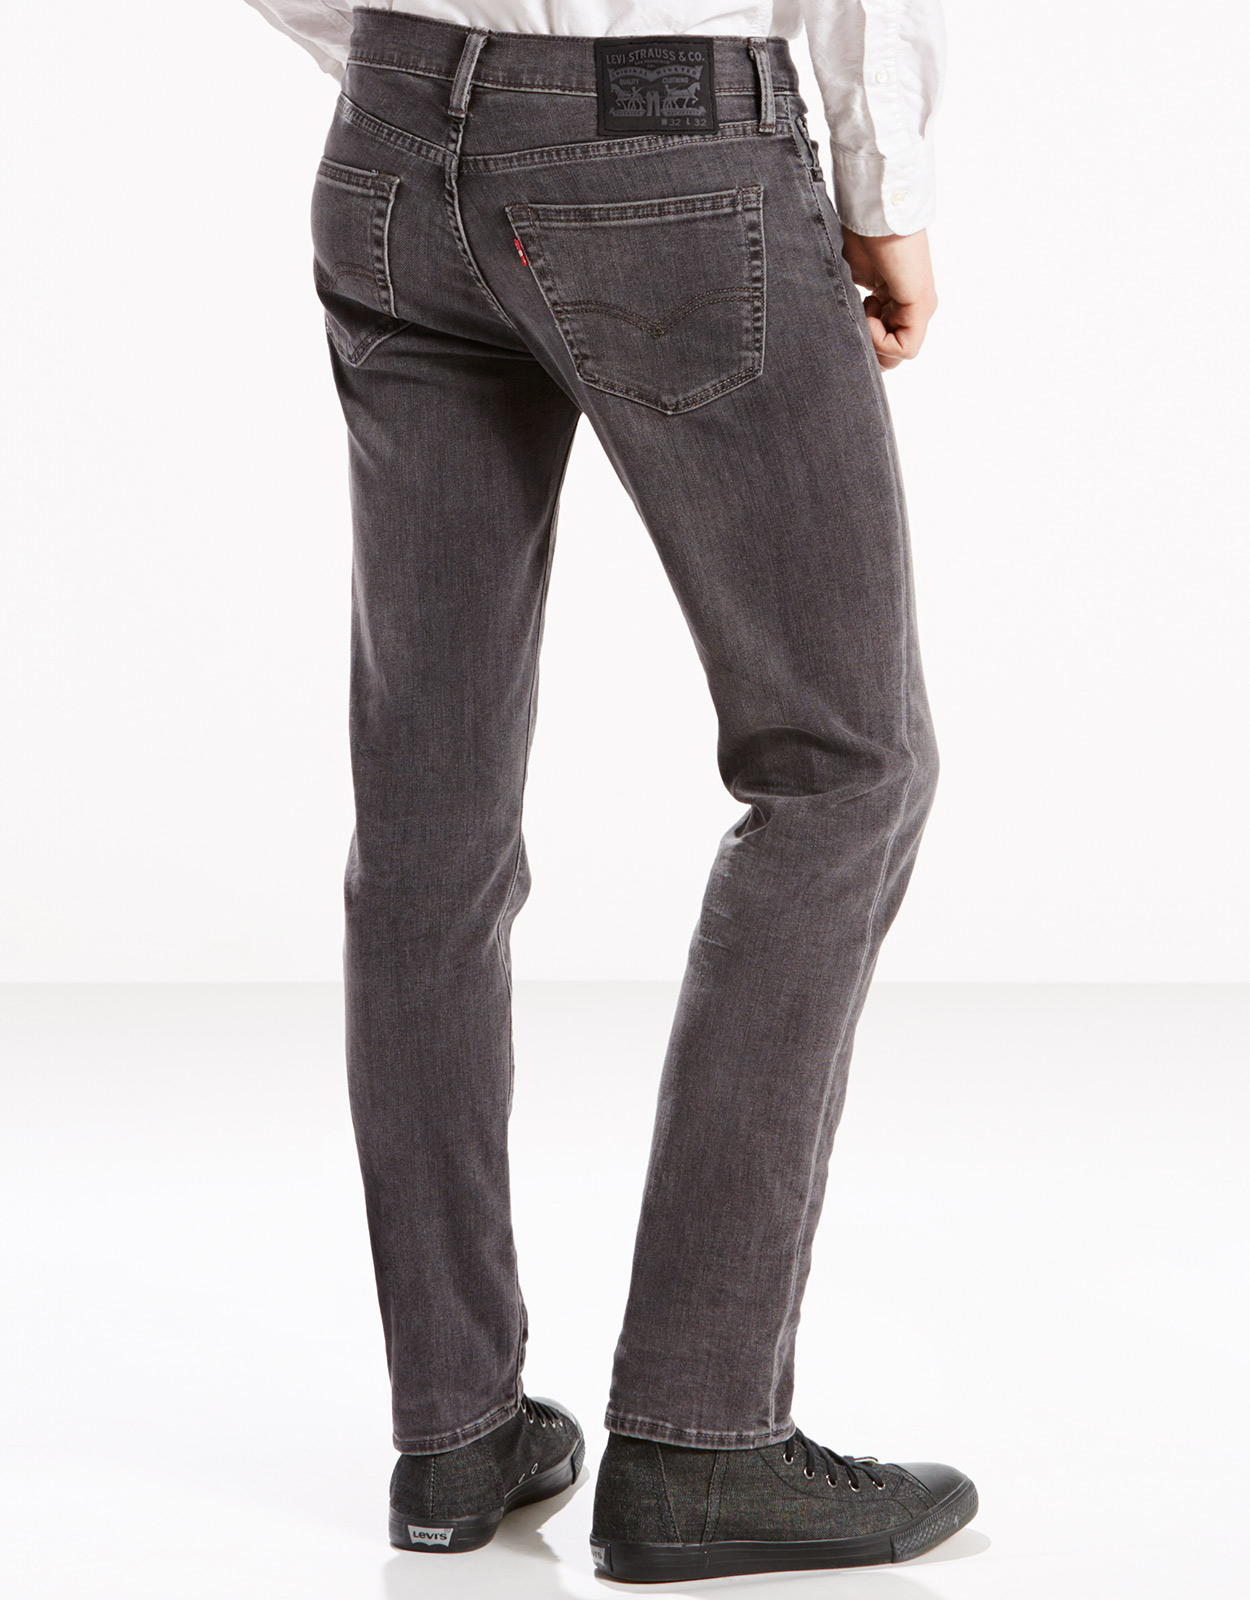 Jeans Levis Levis Men's 511 Slim Fit Jeans - Rockaway Beach